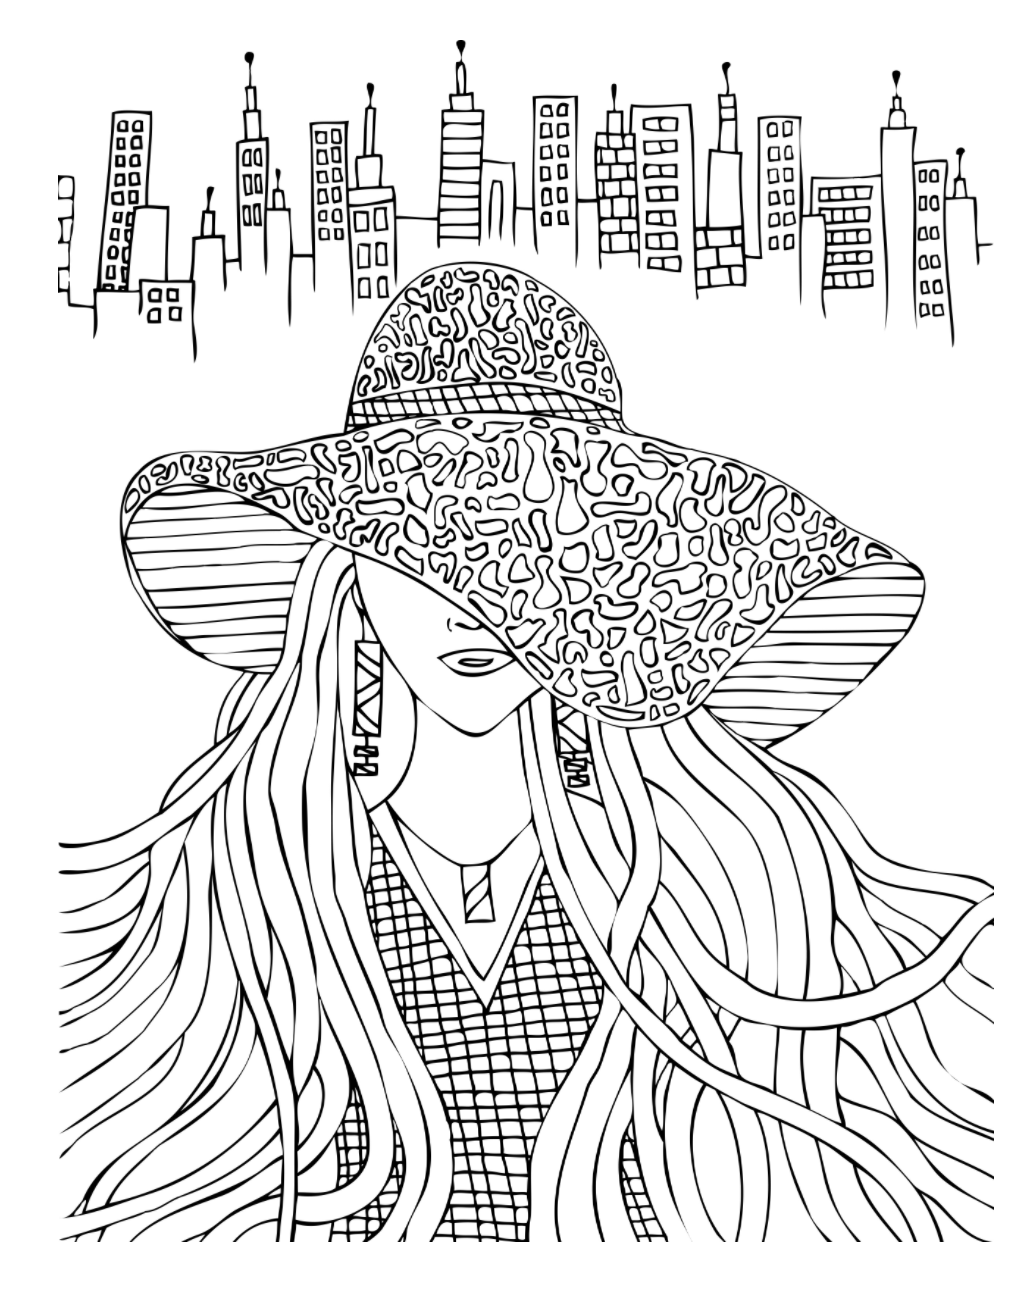 Personal Growth Coloring Book With Mantras Journaling And Mindfulness Exercises Coloring Pages Inspirational Coloring Pages Cool Coloring Pages